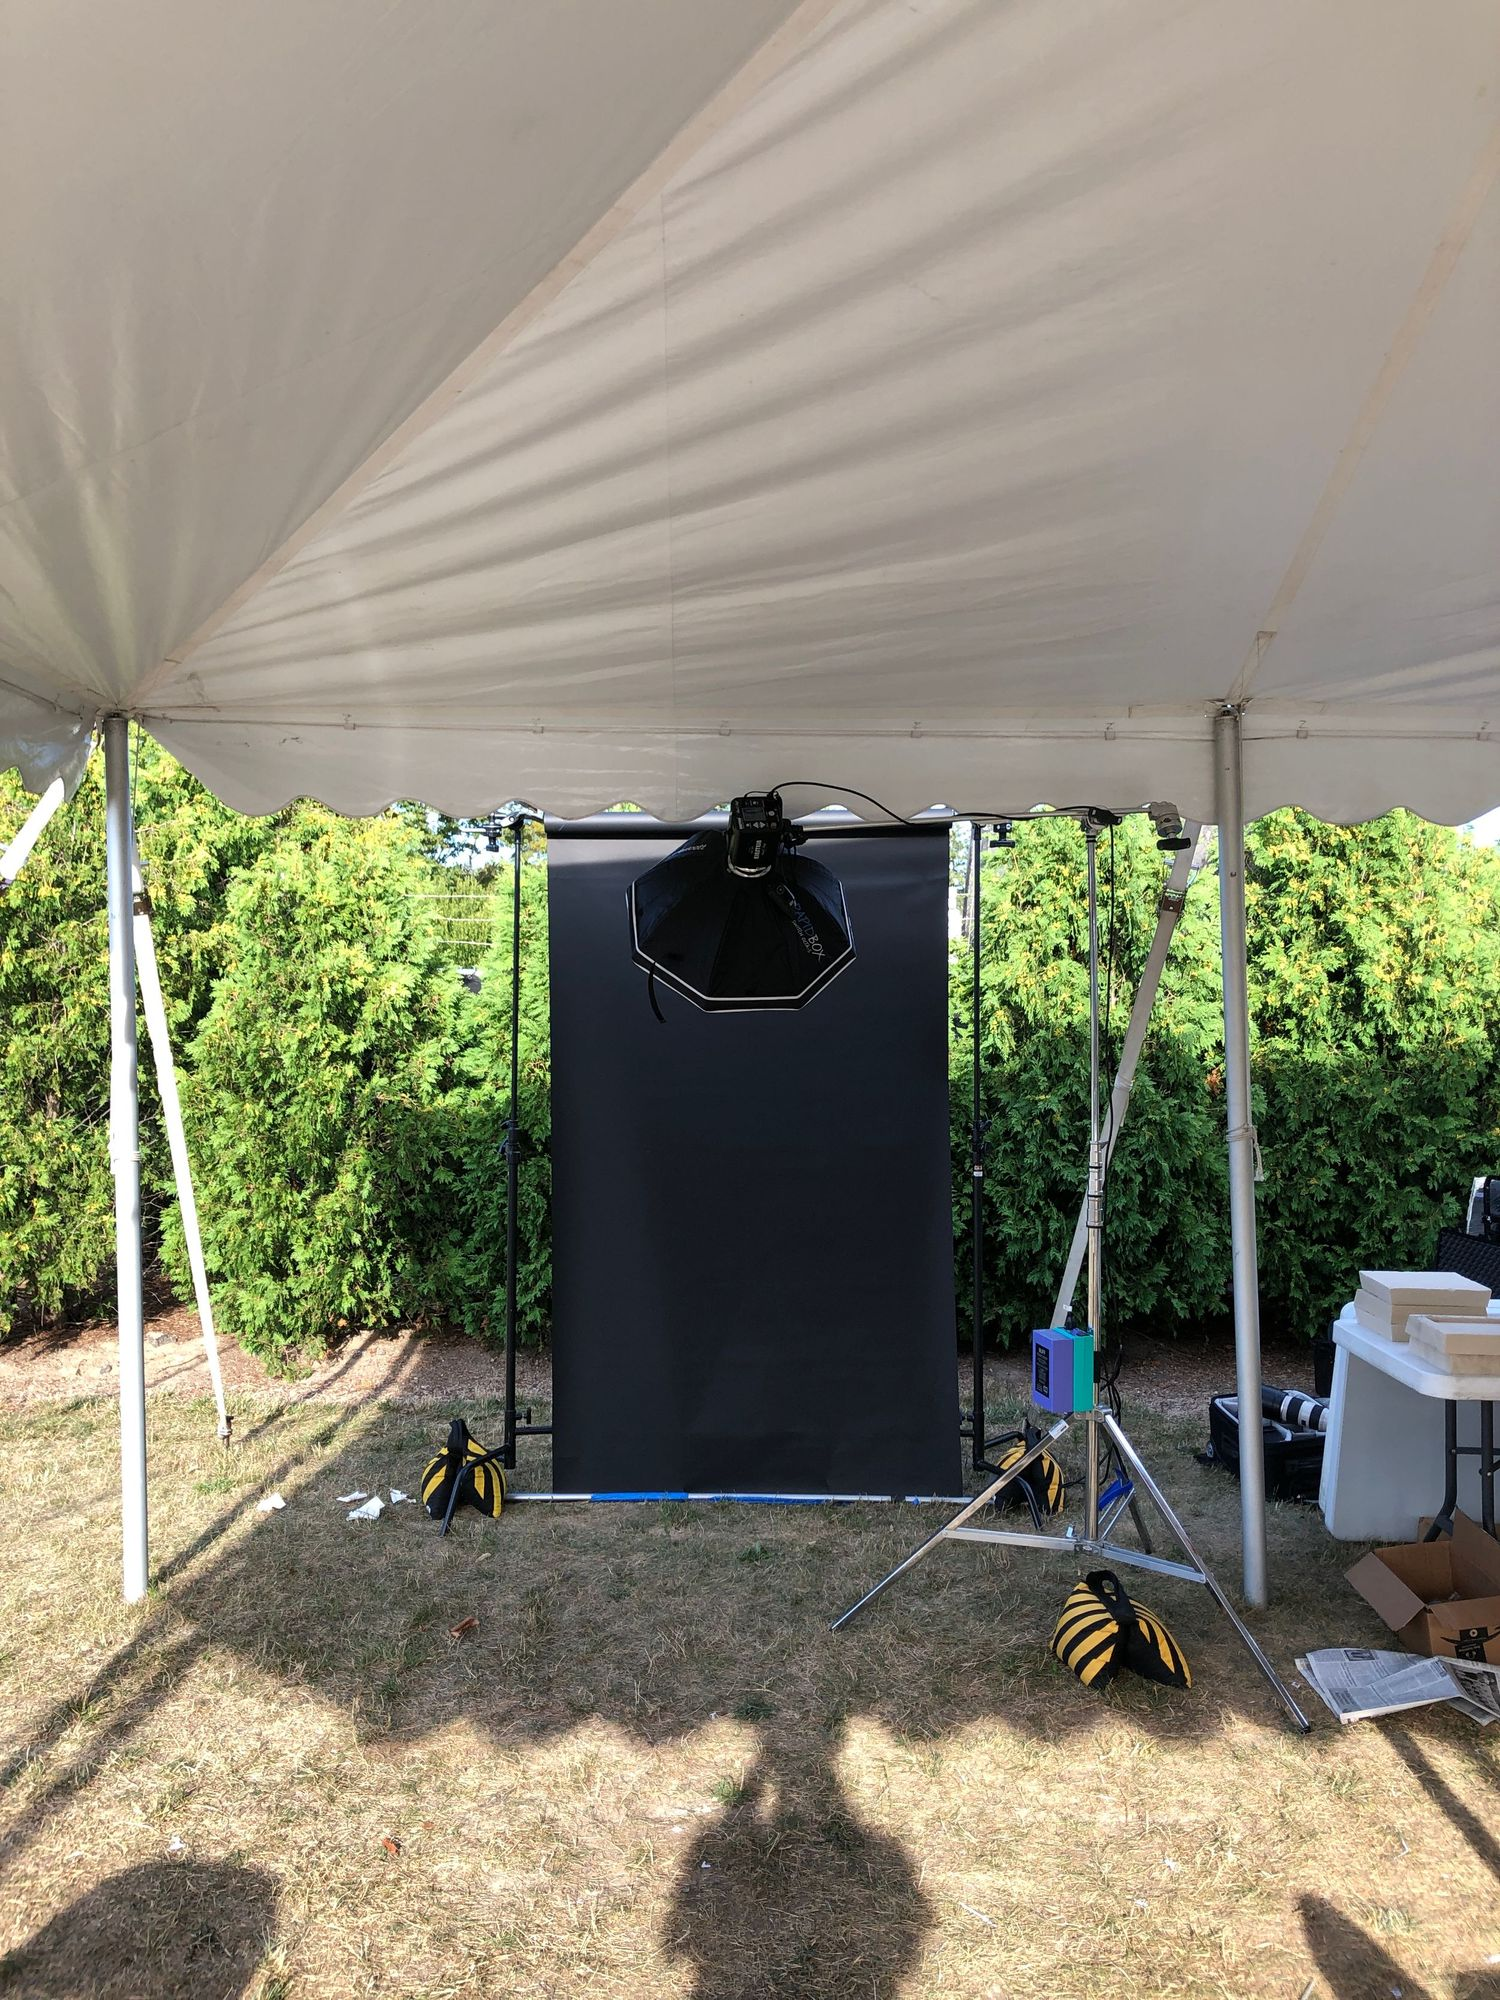 Mobile portrait photography studio under a tent